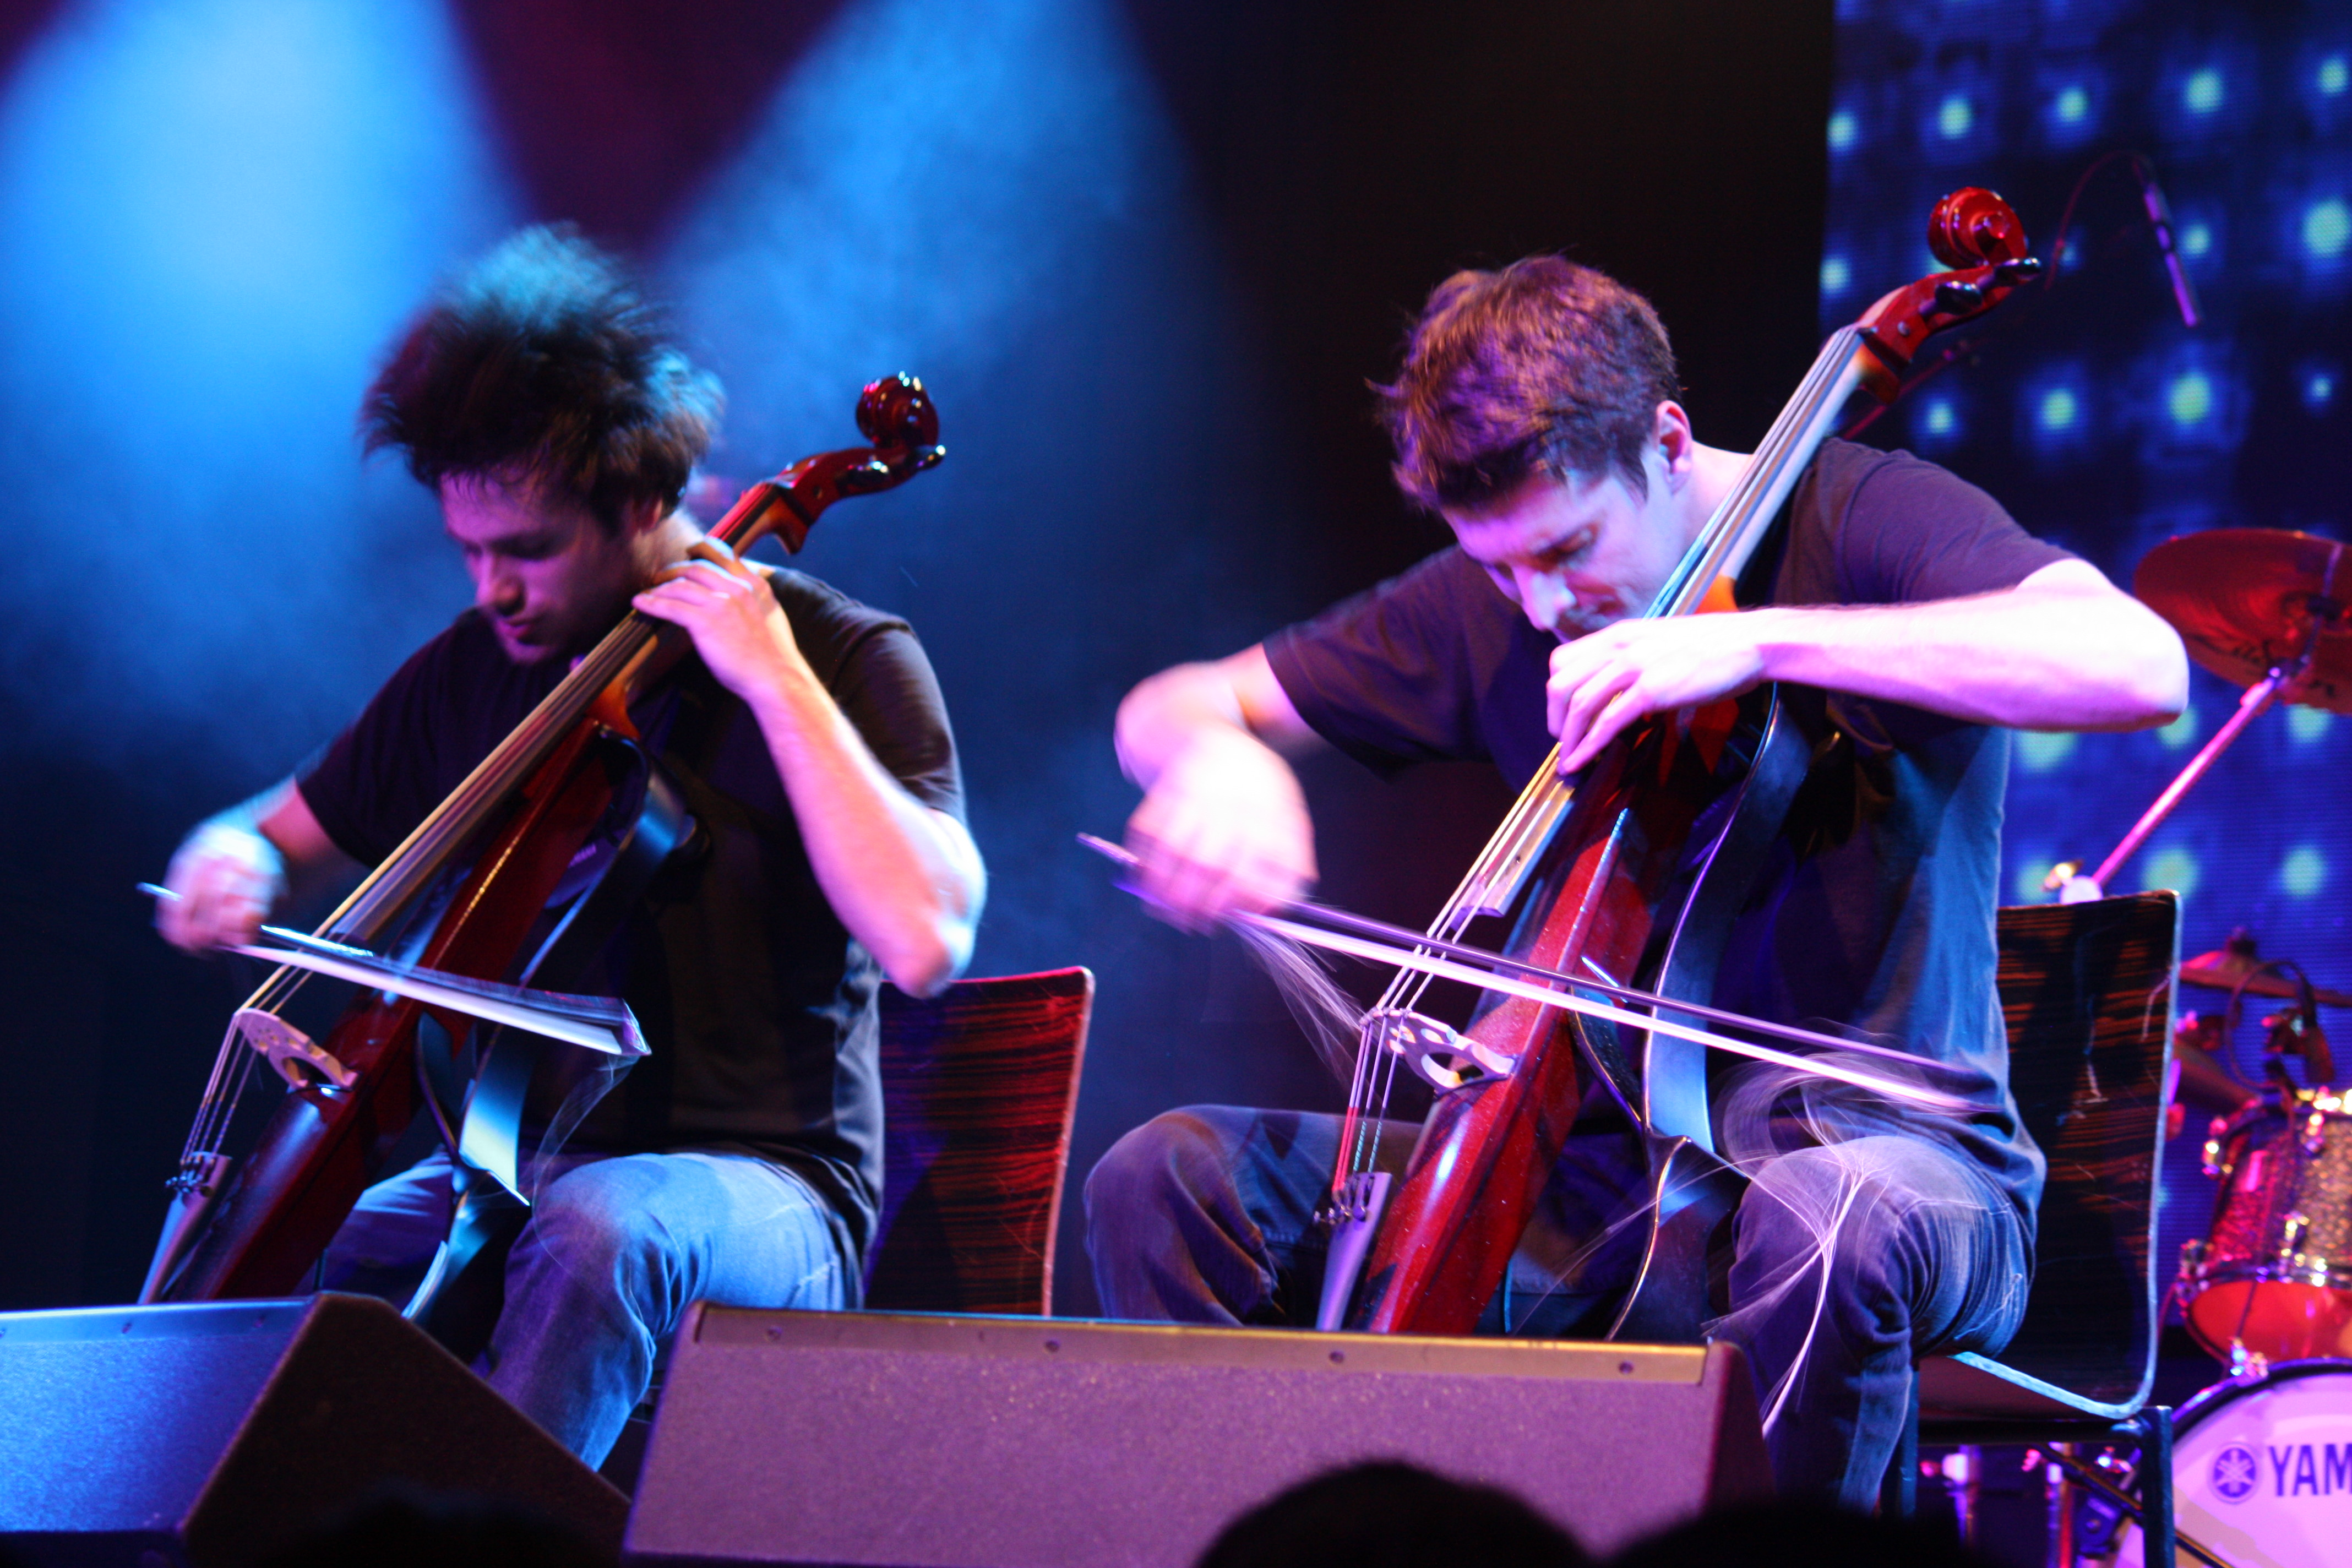 2cellos Live At Highline Ballroom Manta Ray Pictures Guardian Hiro Oxford Ss Shirt In Dusty Blue Biru Muda S 2cello7